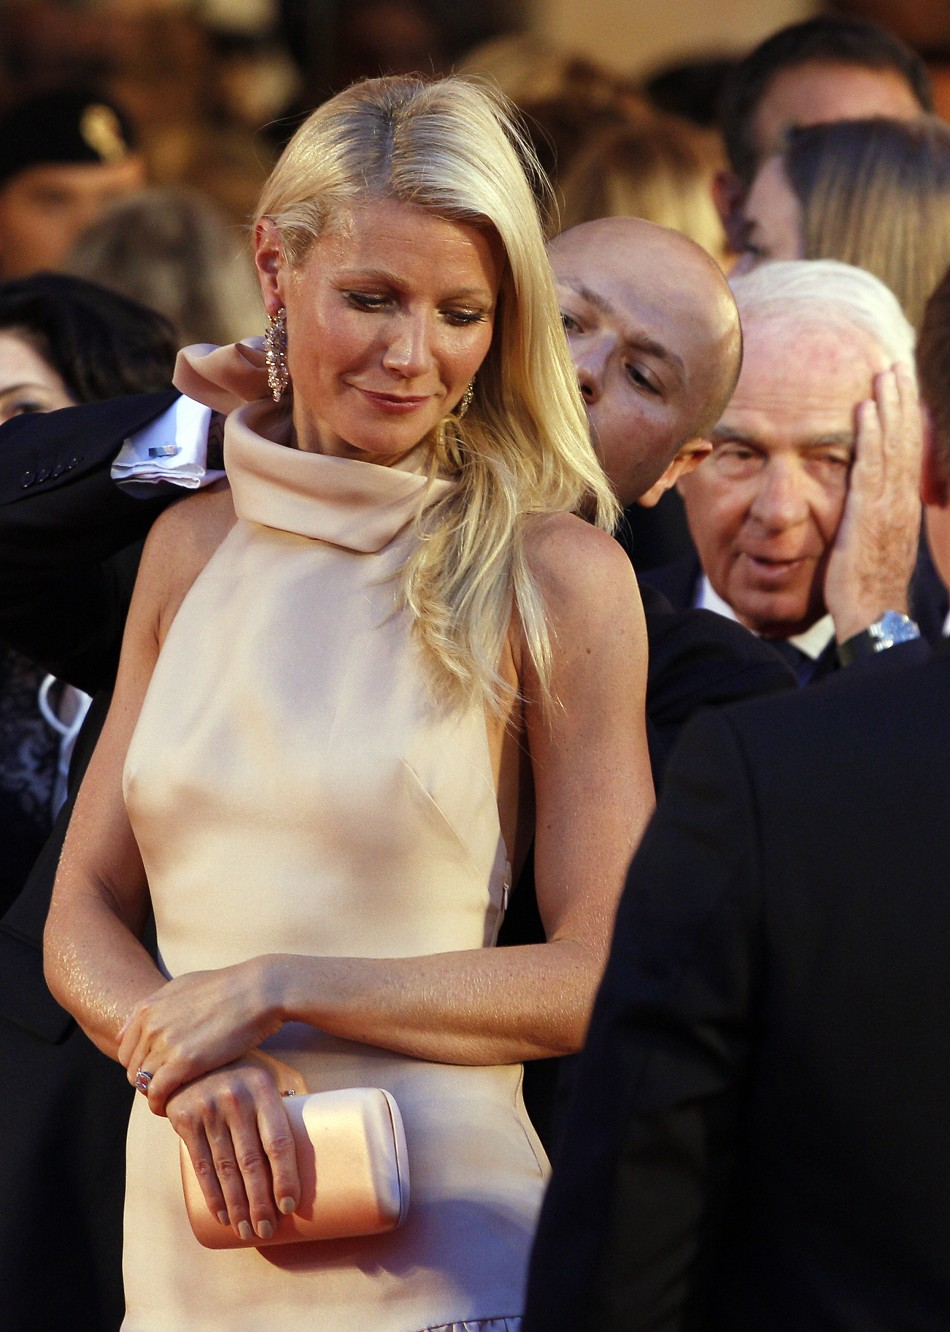 Actress Paltrow, cast member of movie quotContagionquot, is helped by assistant as she arrives on red carpet at Cinema Palace during 68th Venice Film Festival